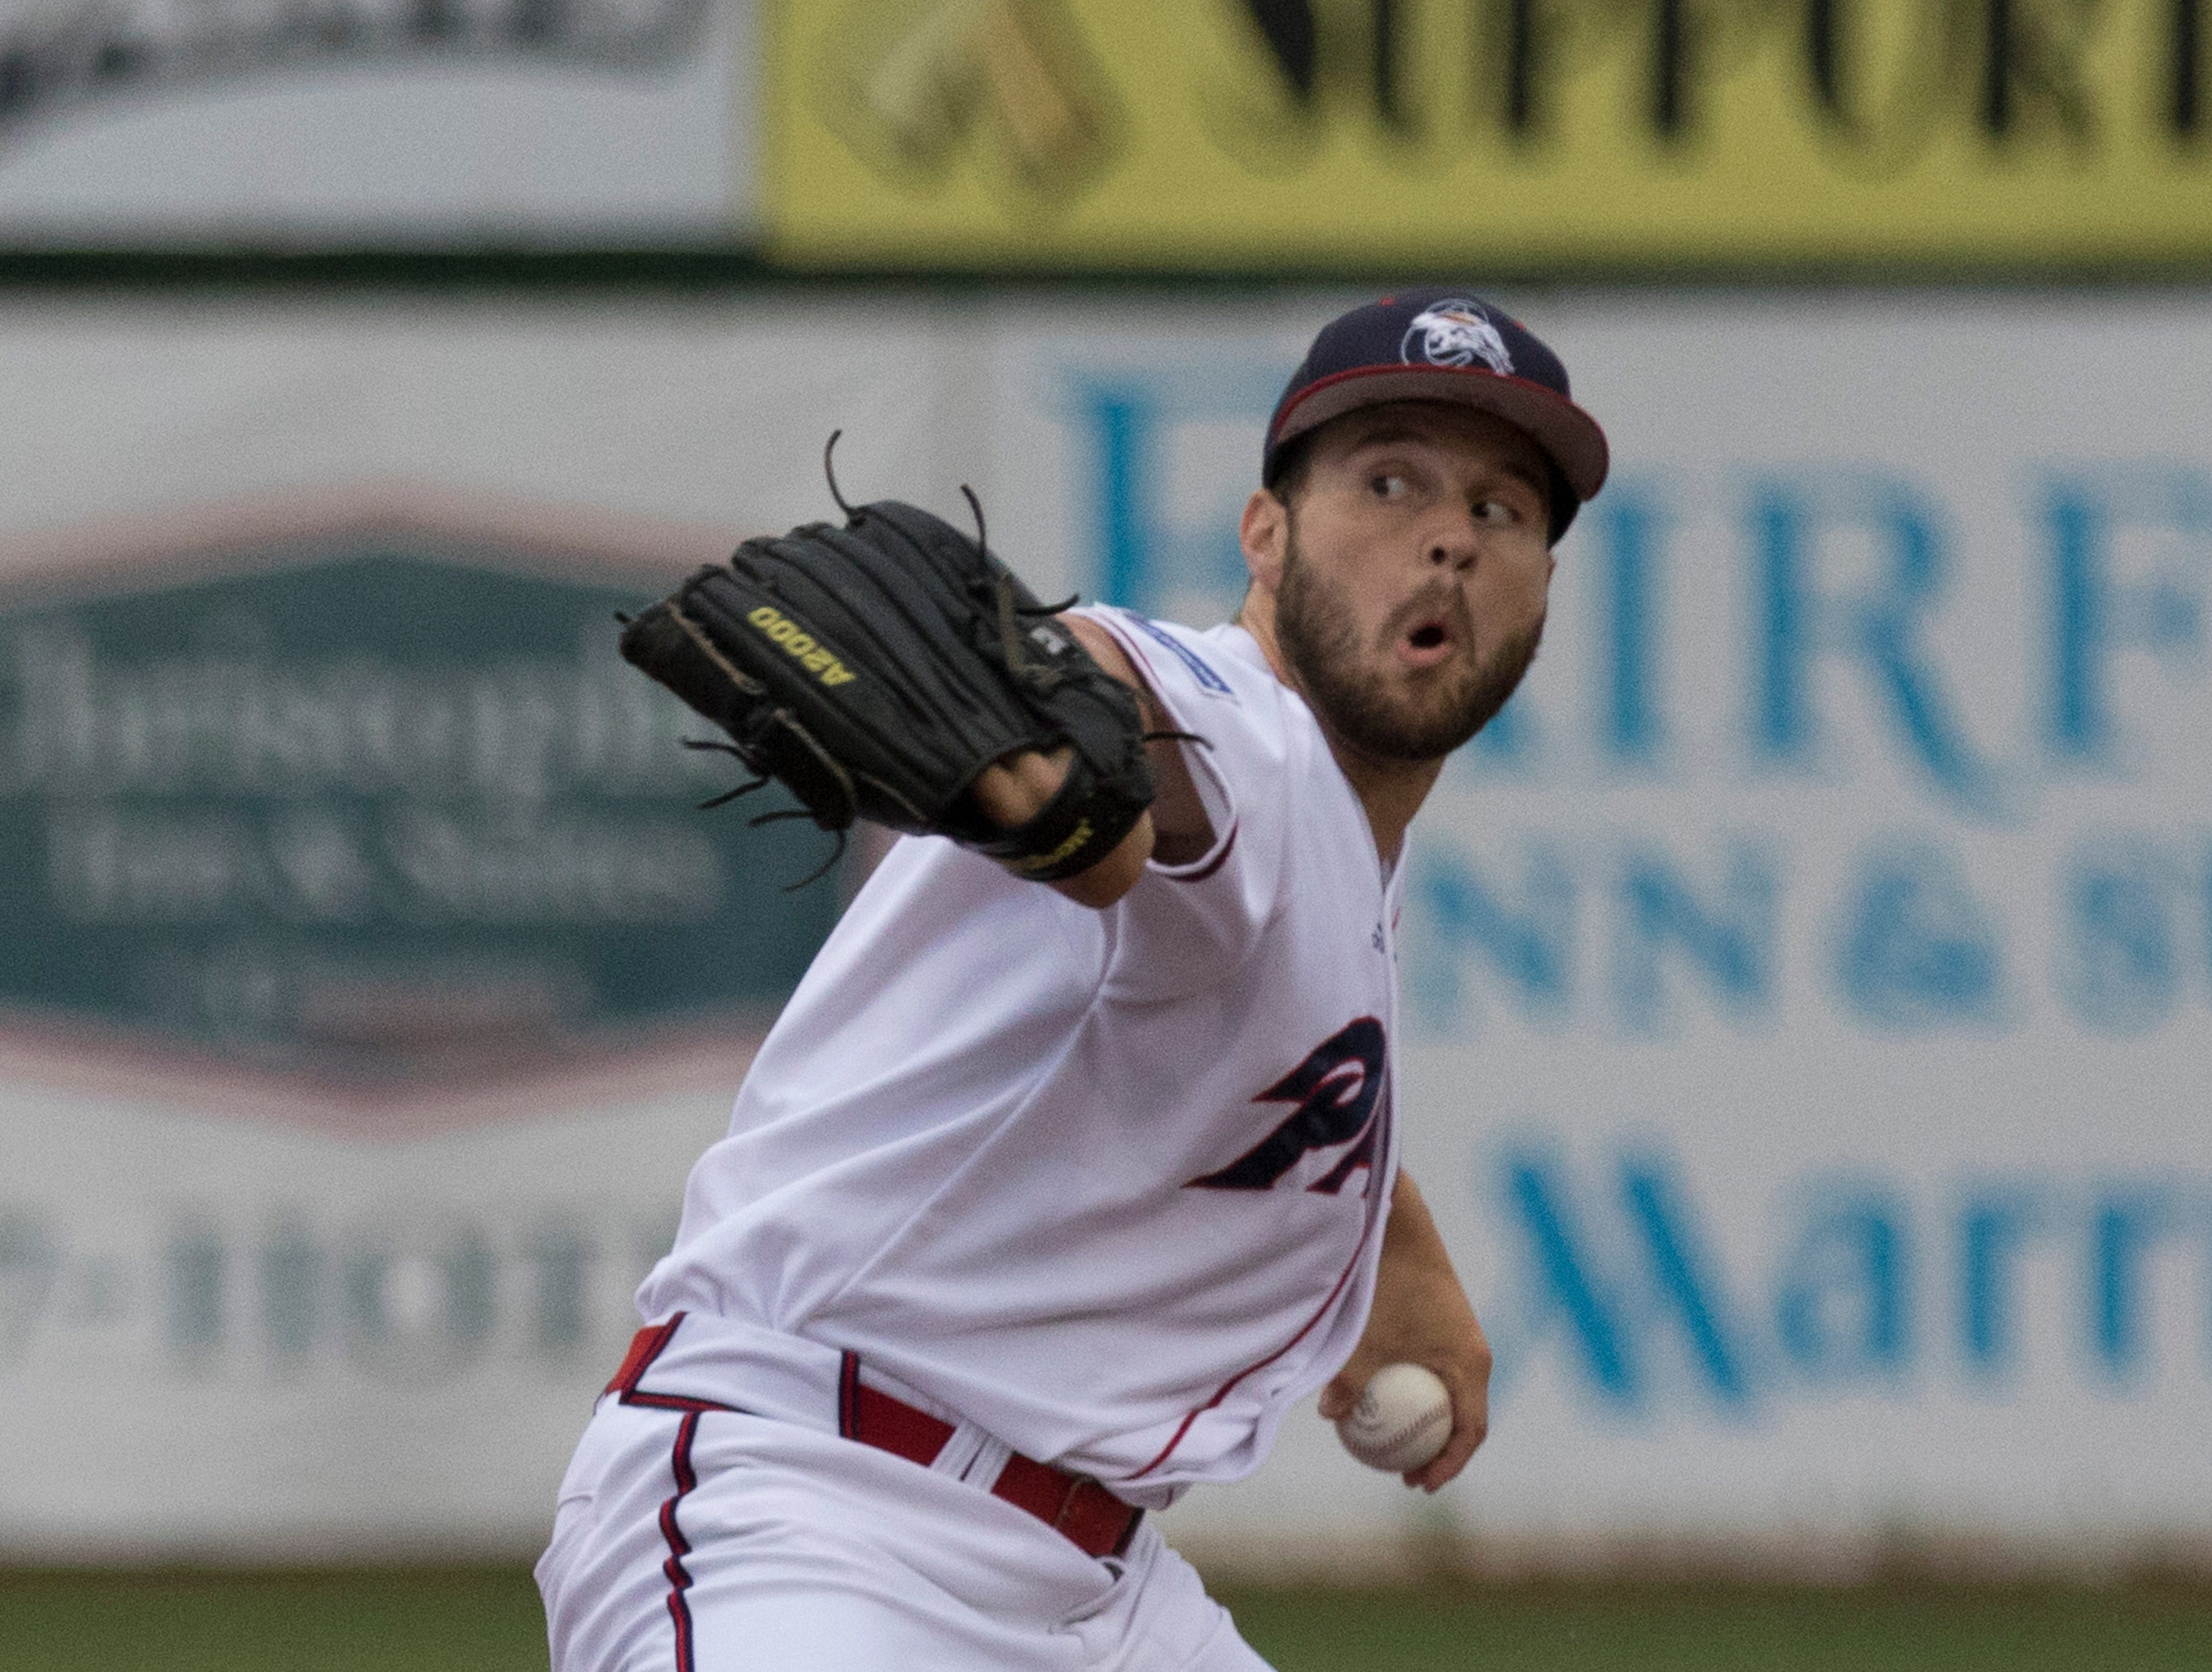 Chillicothe Paints pitcher Michael Jacob only gives up one hit as the Paints defeat the Hannibal Hoots 6-1.